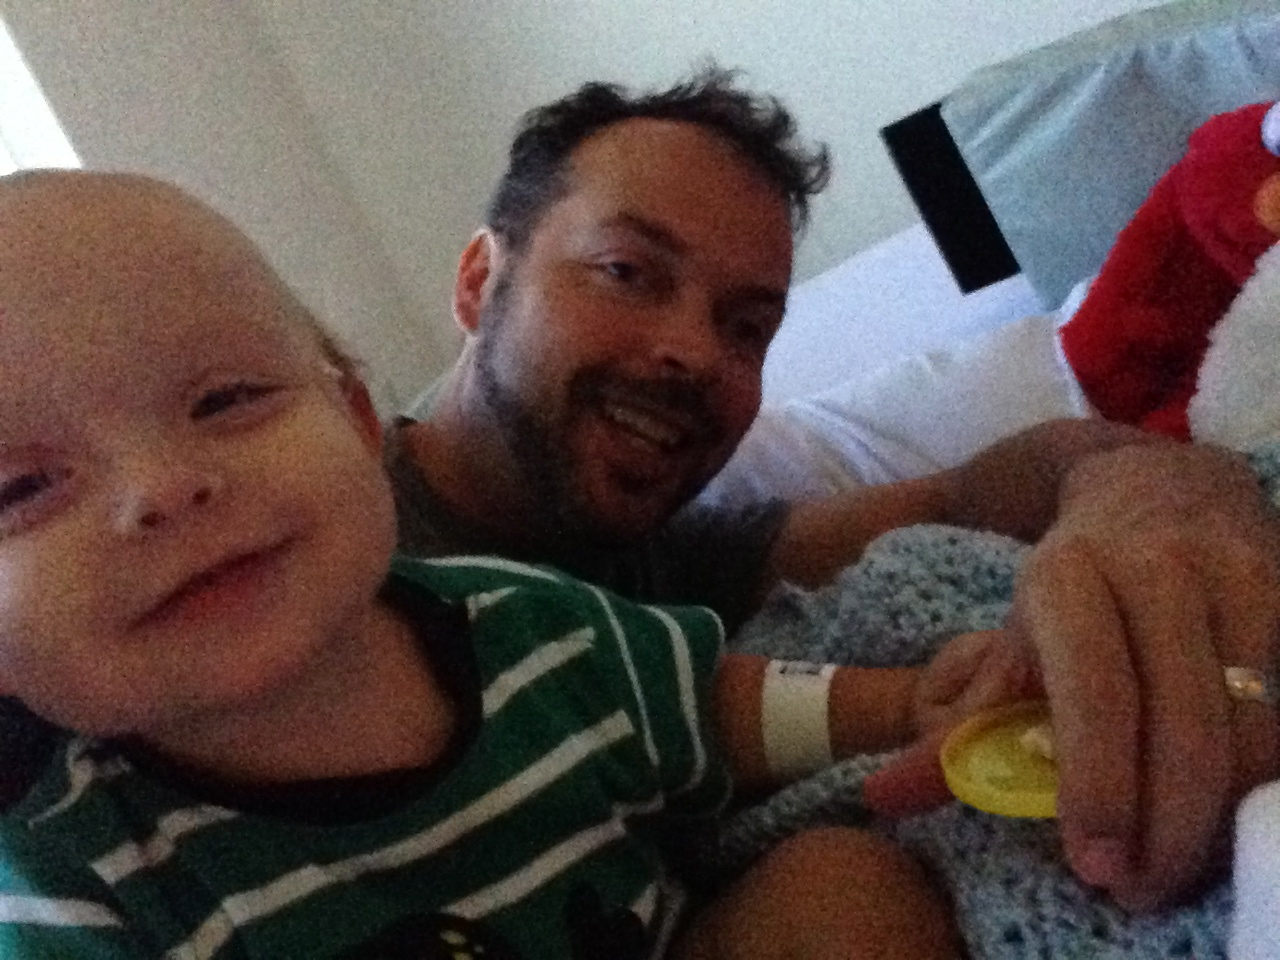 Daddy and Son feeling better in the hospital